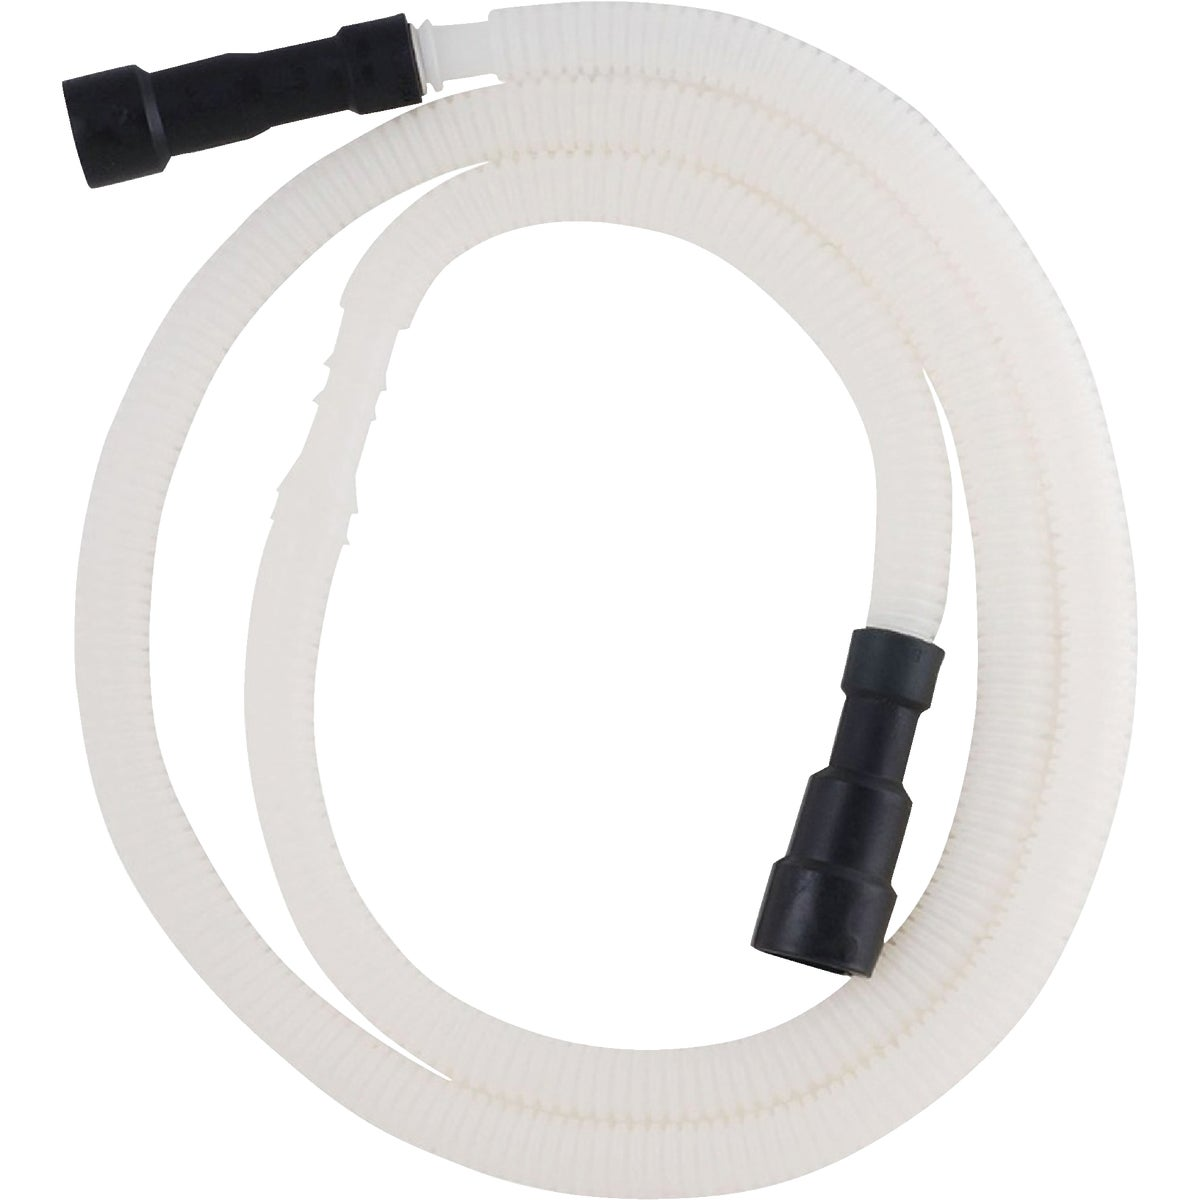 DISHWASHER DISCHARG HOSE - 400413 by Wm H Harvey Co